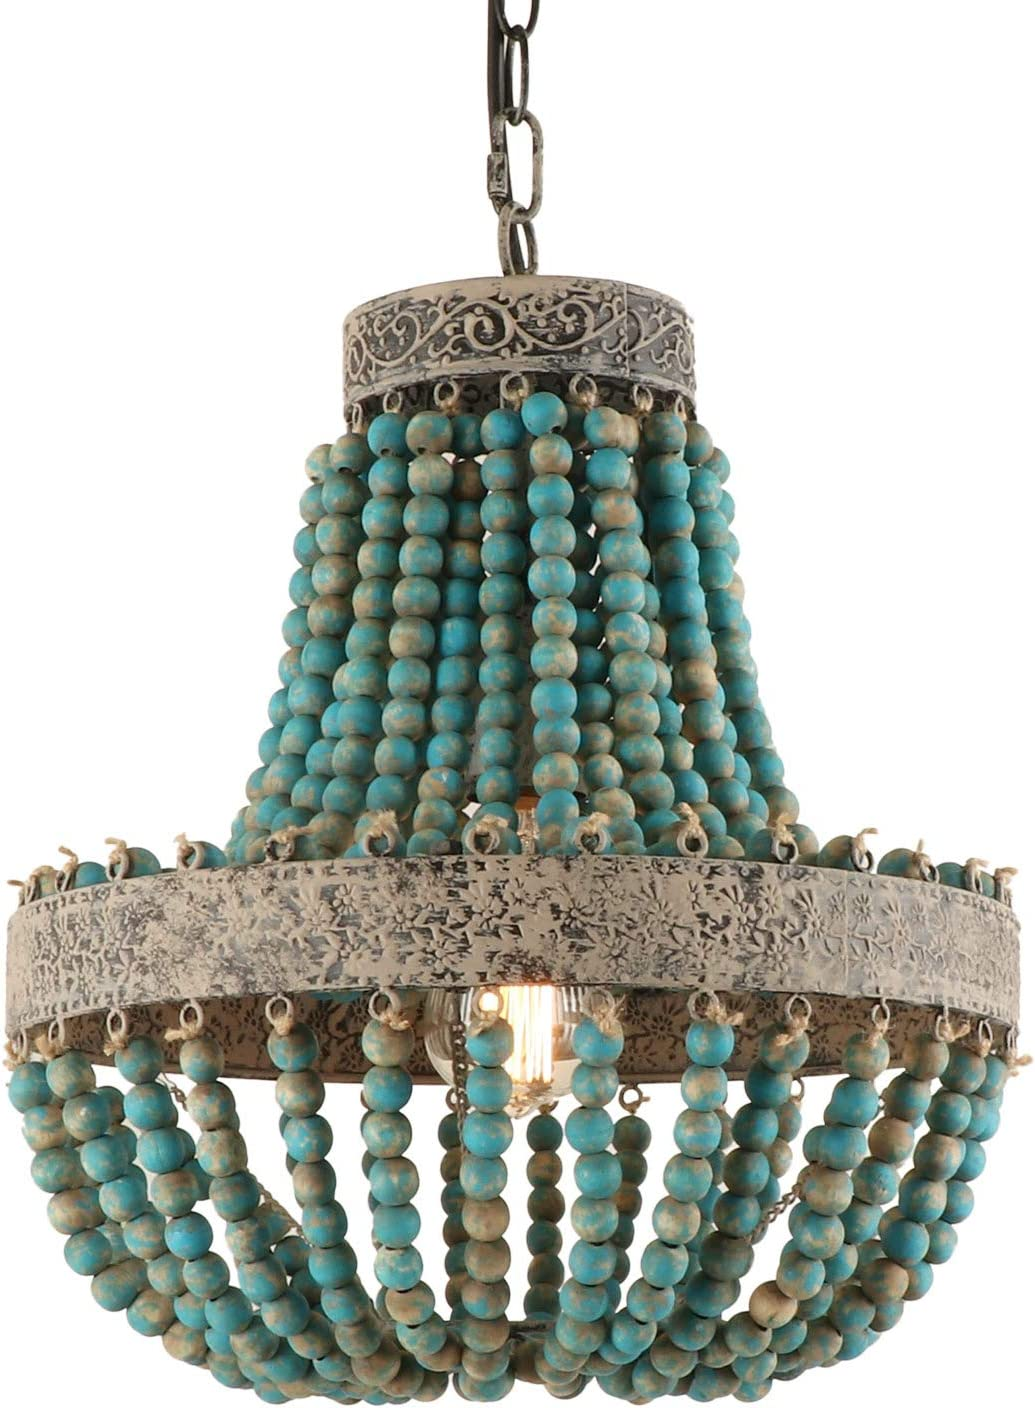 1-Light Wood Beaded Chandelier Sale special price Mini Rustic Bohe Farmhouse Sized Ranking integrated 1st place